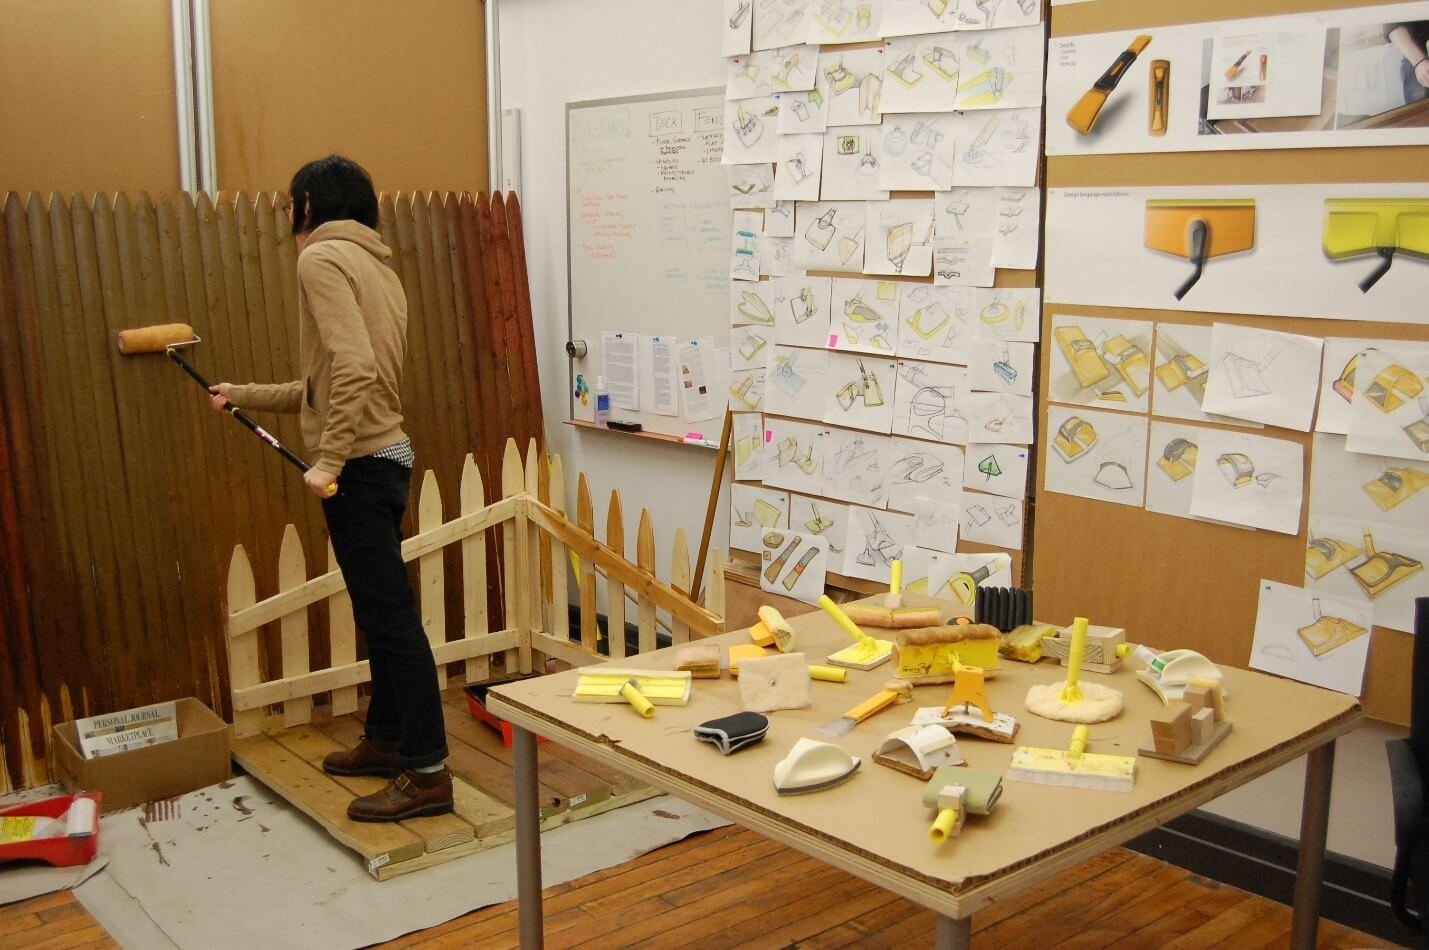 Creative Sample #6: Design consultant trying to mimic the customer experience's using wood tools